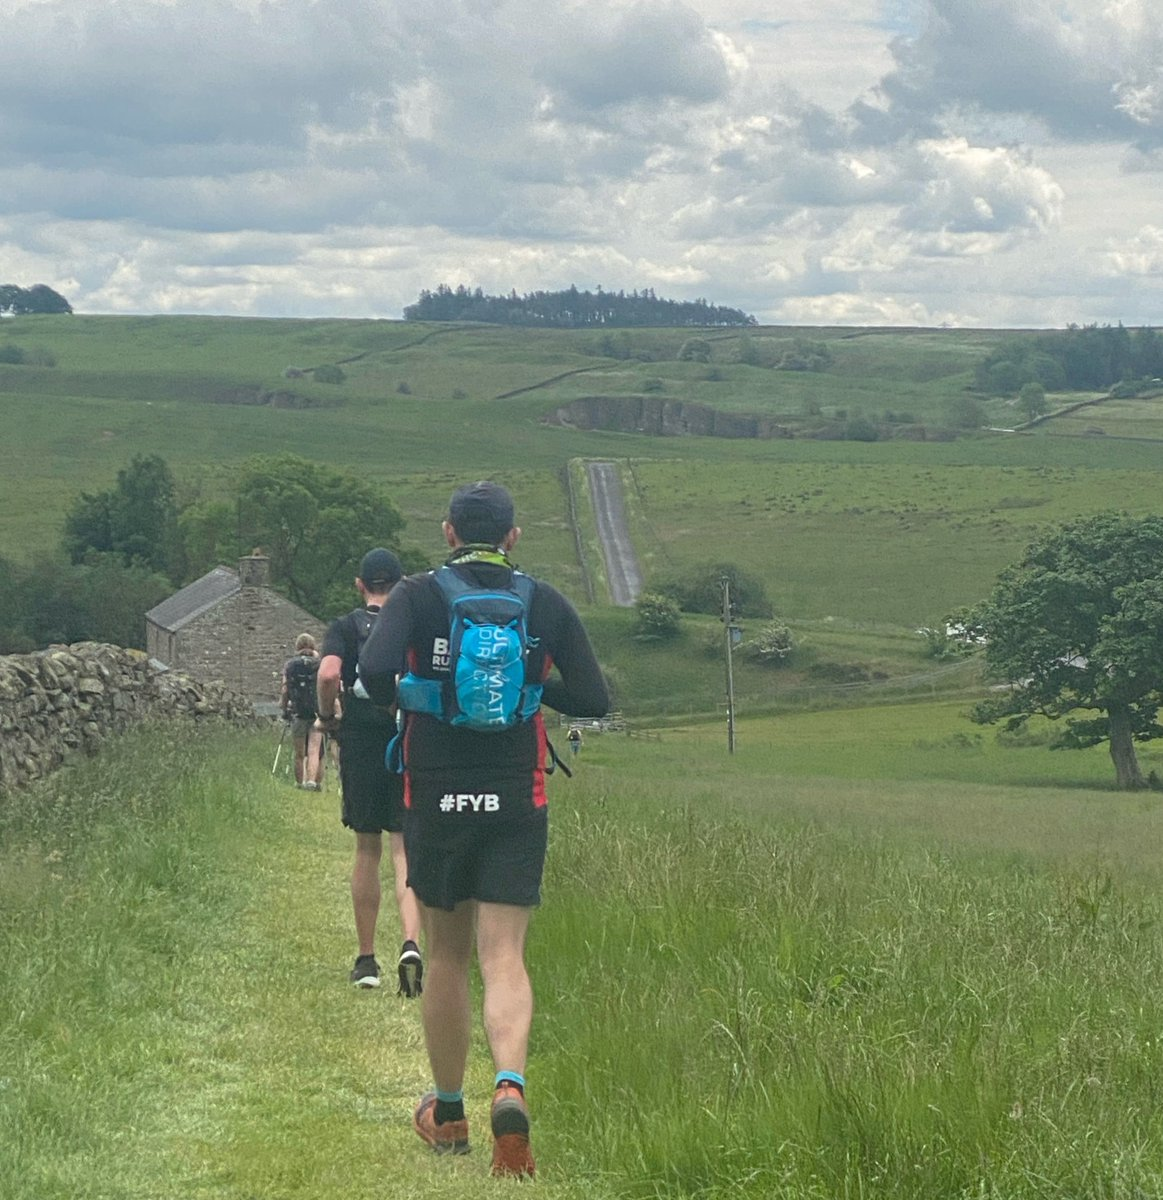 test Twitter Media - Give around of applause to EMT1 Will Griffin, who took on #TheWall challenge on the 19th June, running 70 miles from Carlisle to Newcastle along Hadrian's wall and raised £1,175 for #airambulance Well done Will fantastic achievement 👏 https://t.co/wDvobaQJui